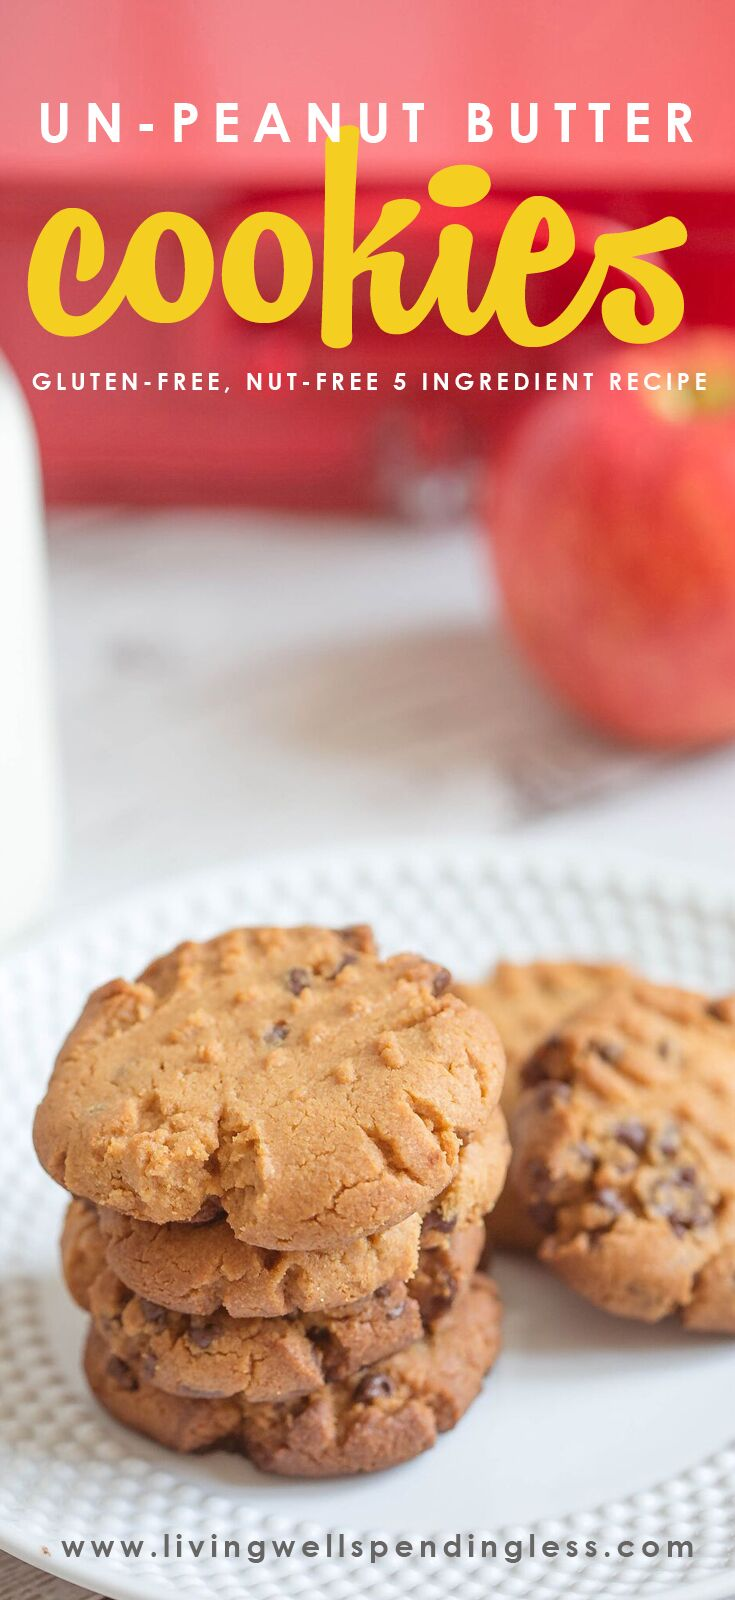 Gluten Free Nut Free Cookies | 5 Ingredient Cookies | Best After School Snack Food | Lunch Box Treats | Food Made Simple